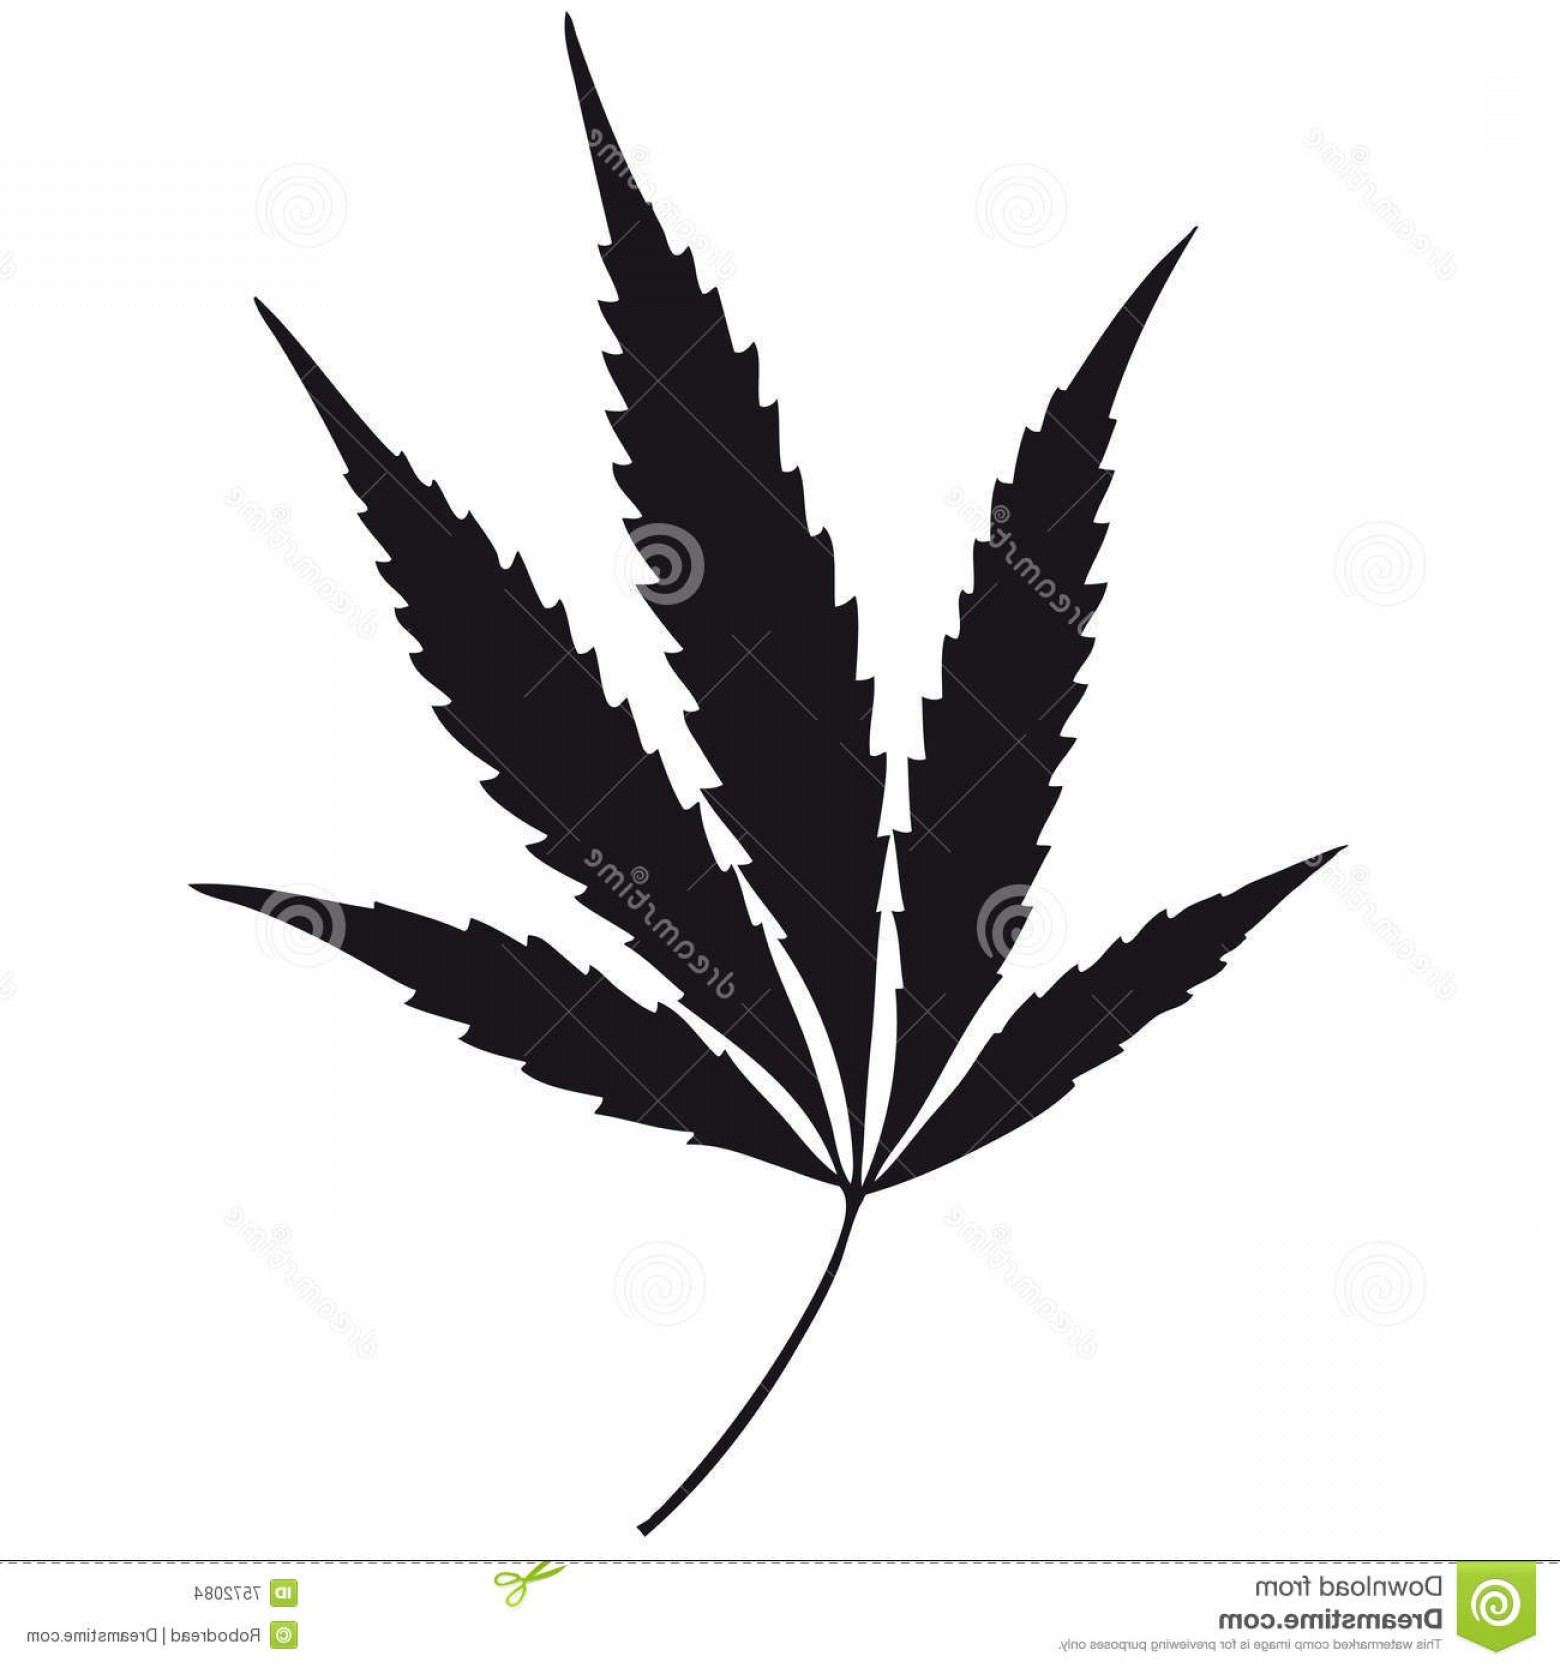 Black And White Vector Image Of Weed Plants: Stock Images Marijuana Leaf Vector Image